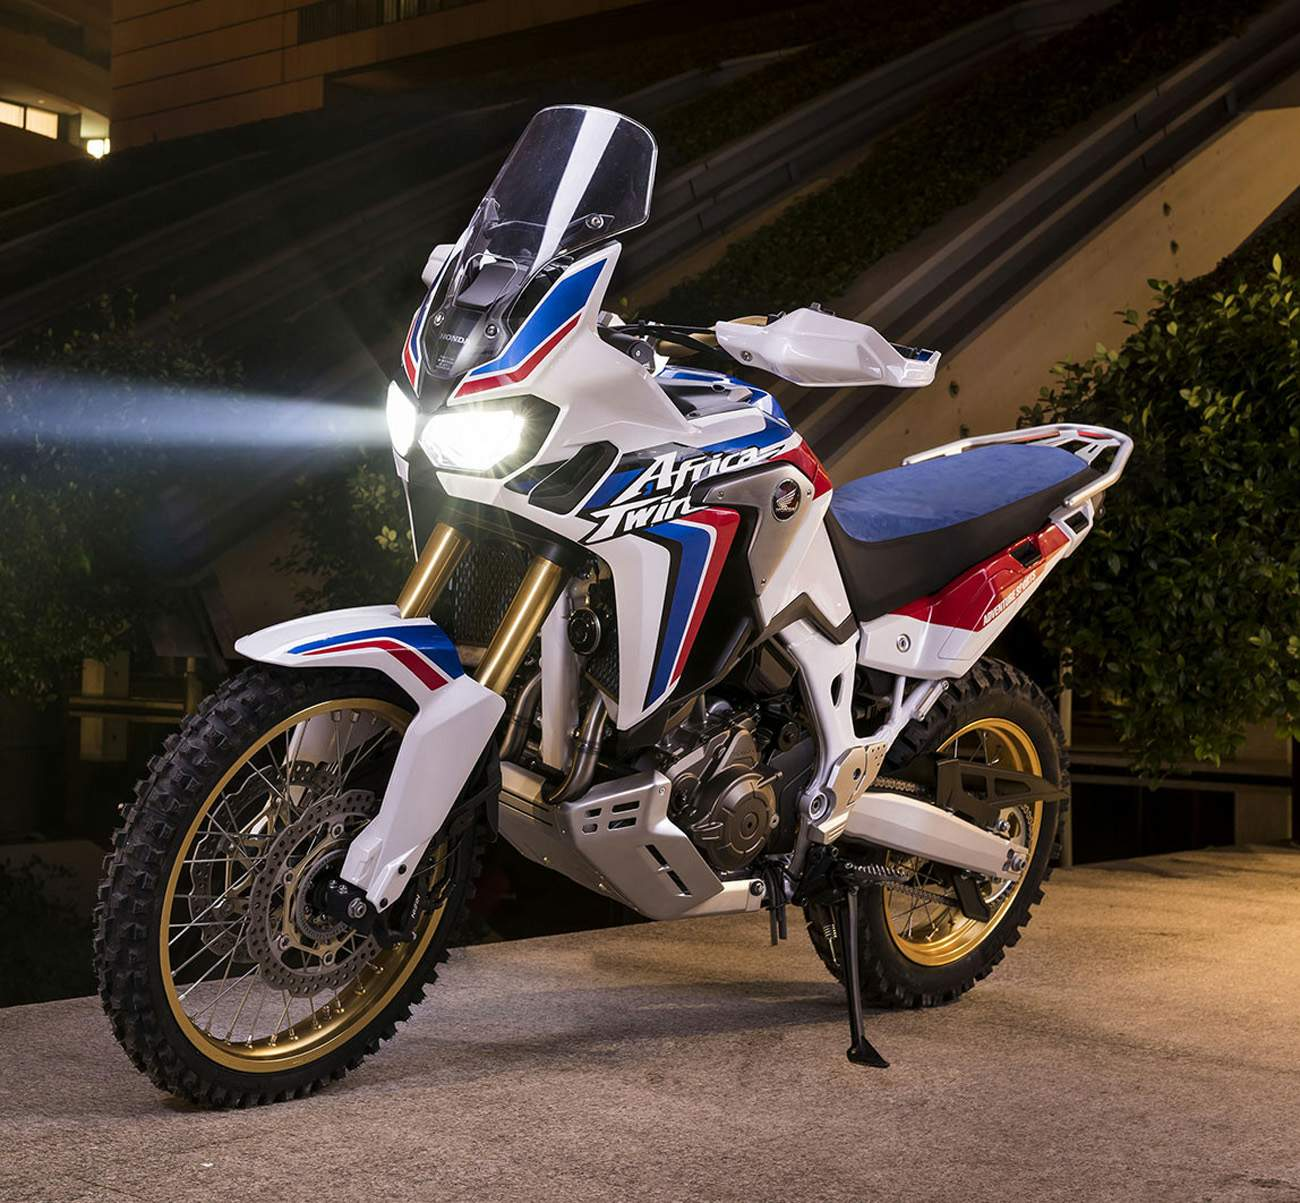 Honda Africa Twin Adventure  Sports Concept For Sale Specifications, Price and Images